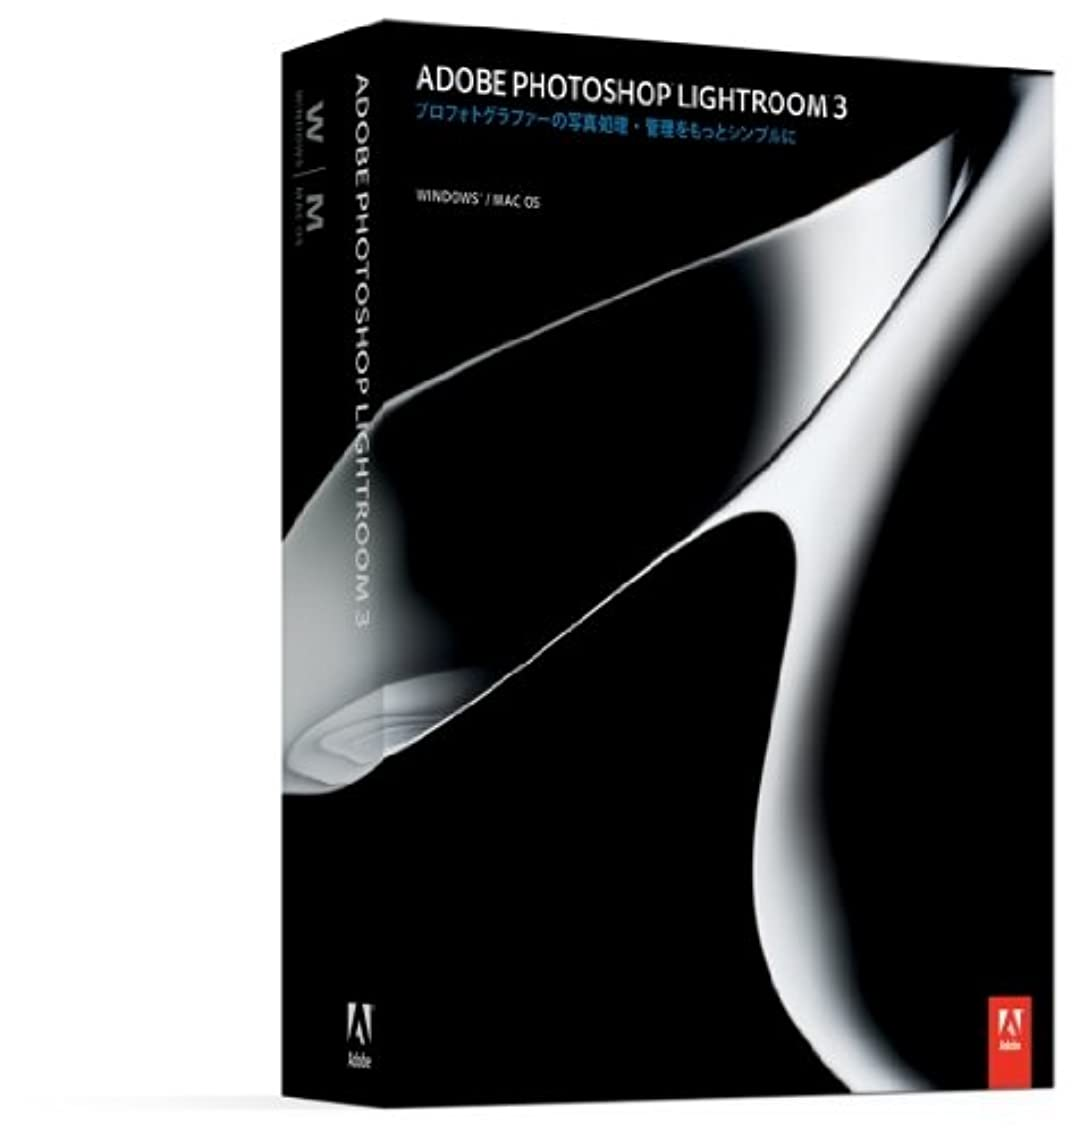 毎日終わり円形のAdobe Photoshop Lightroom 3.0 Windows/Macintosh版 (旧価格品)